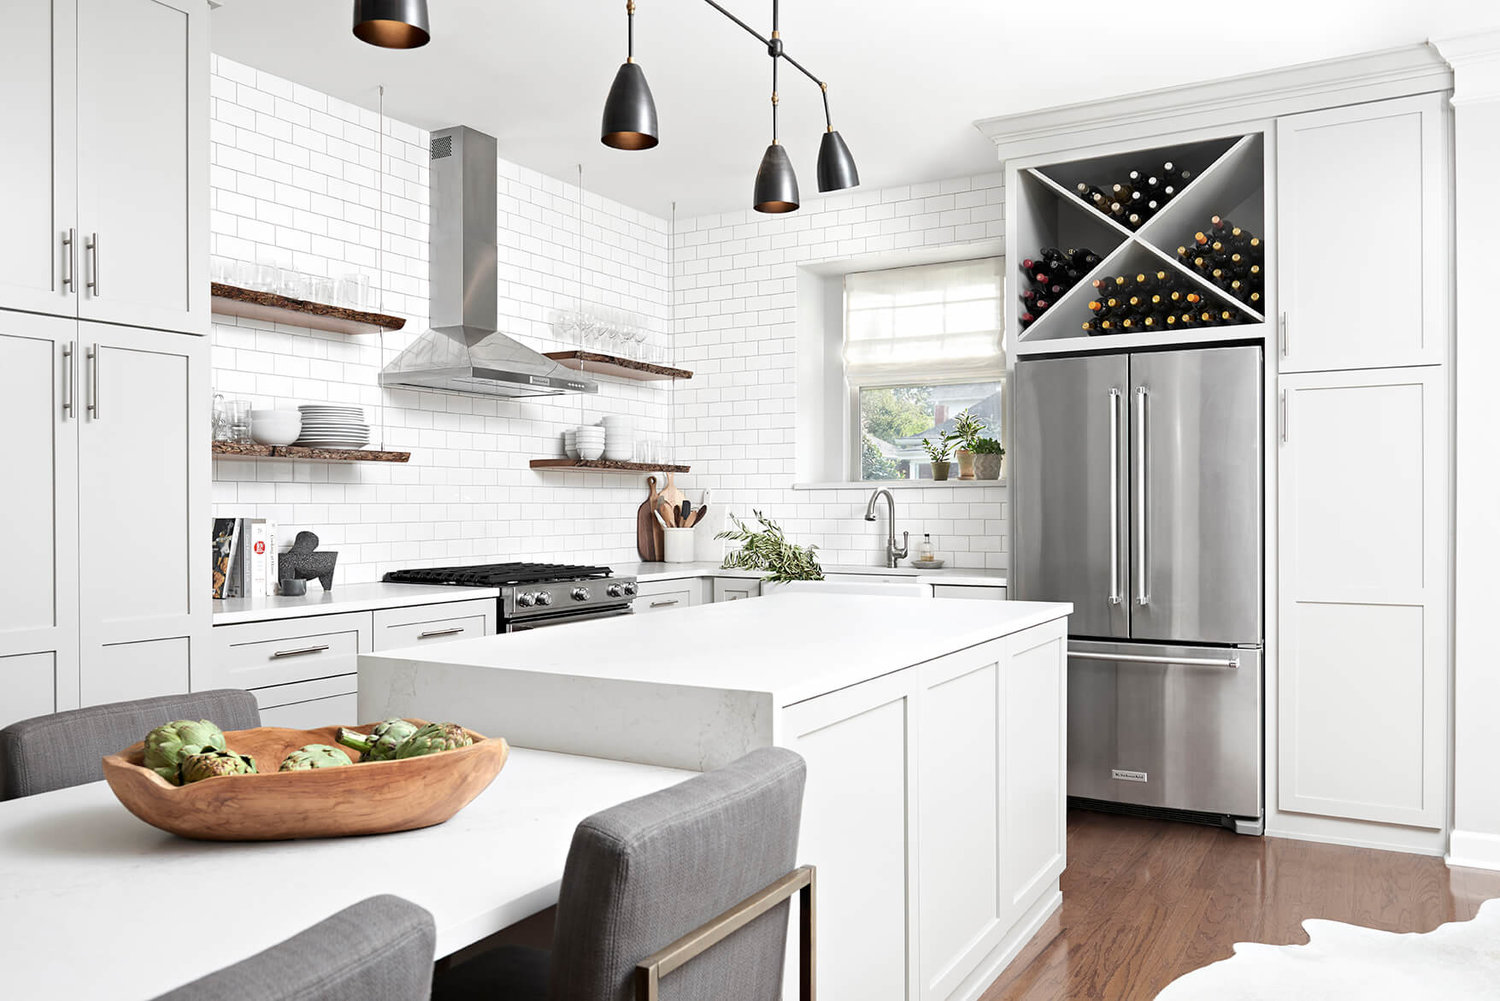 white brick kitchen with gray cabinets stainless steel appliances white counters wood accessories - Bureau Design